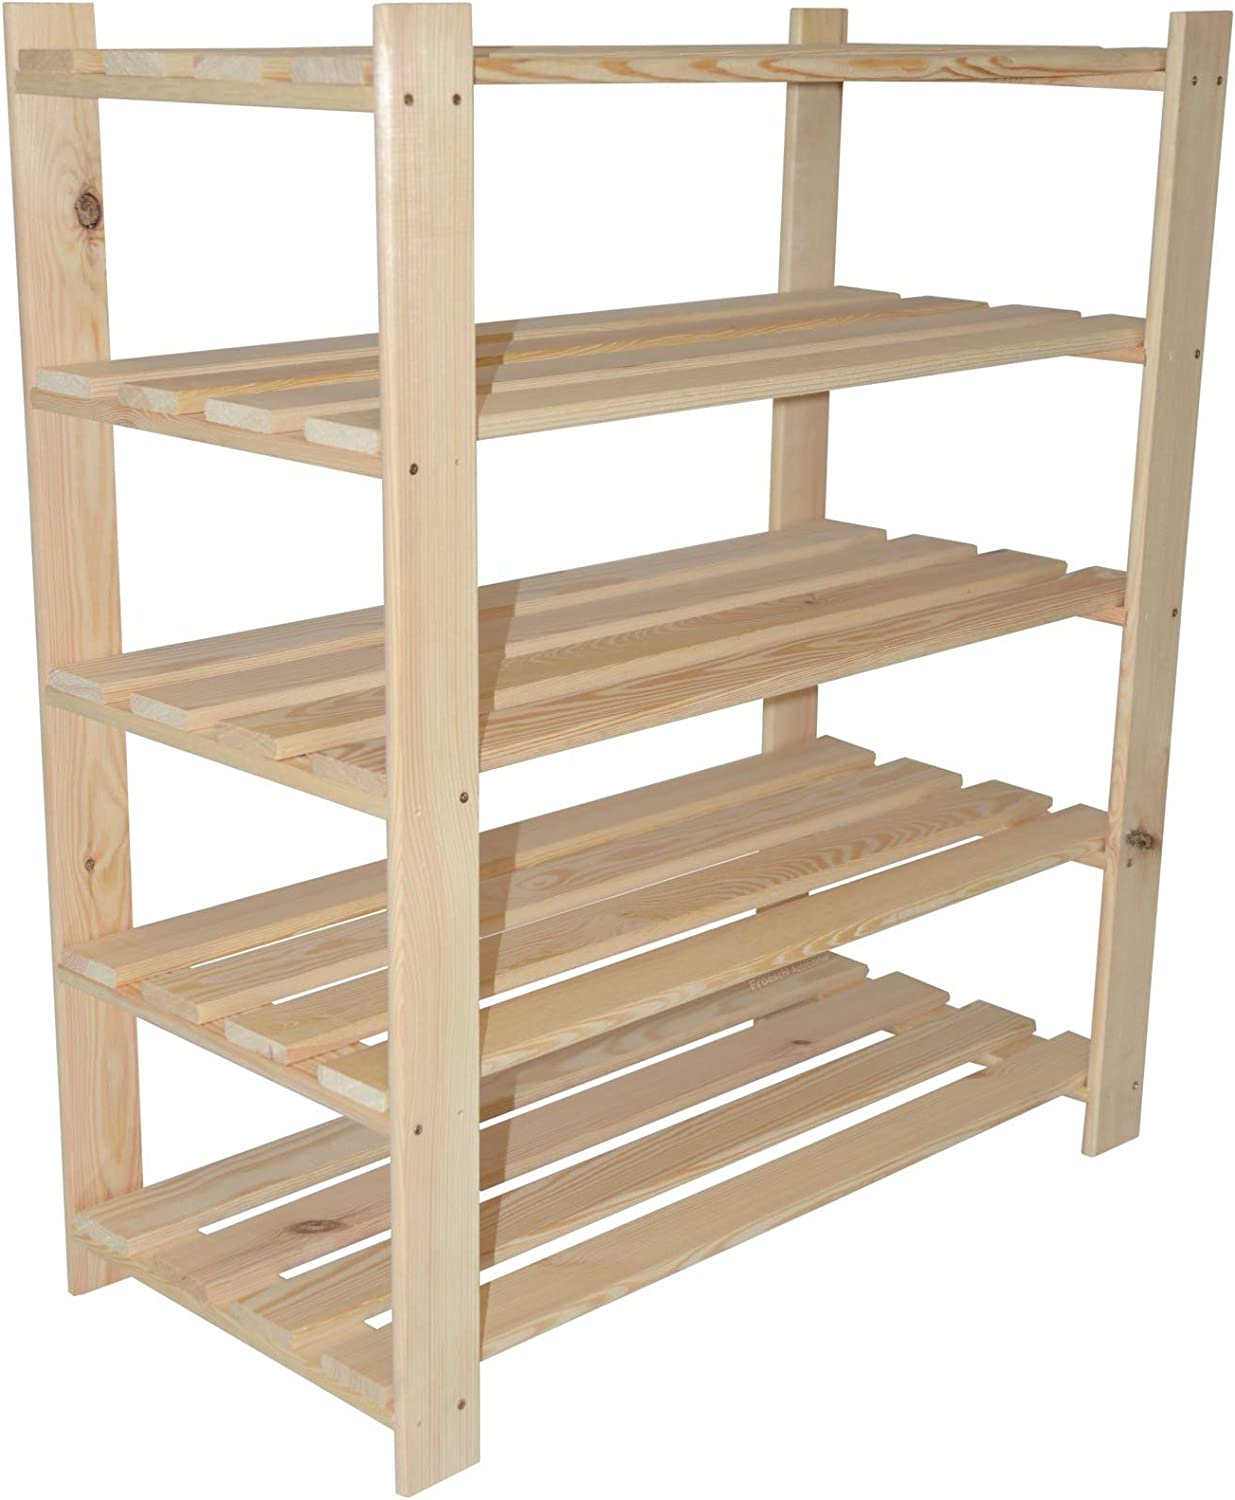 90 X 80 Cm X 37 Cm With 5 Shelves Small Wooden Shoe Rack Shelf Amazon Co Uk Diy Tools